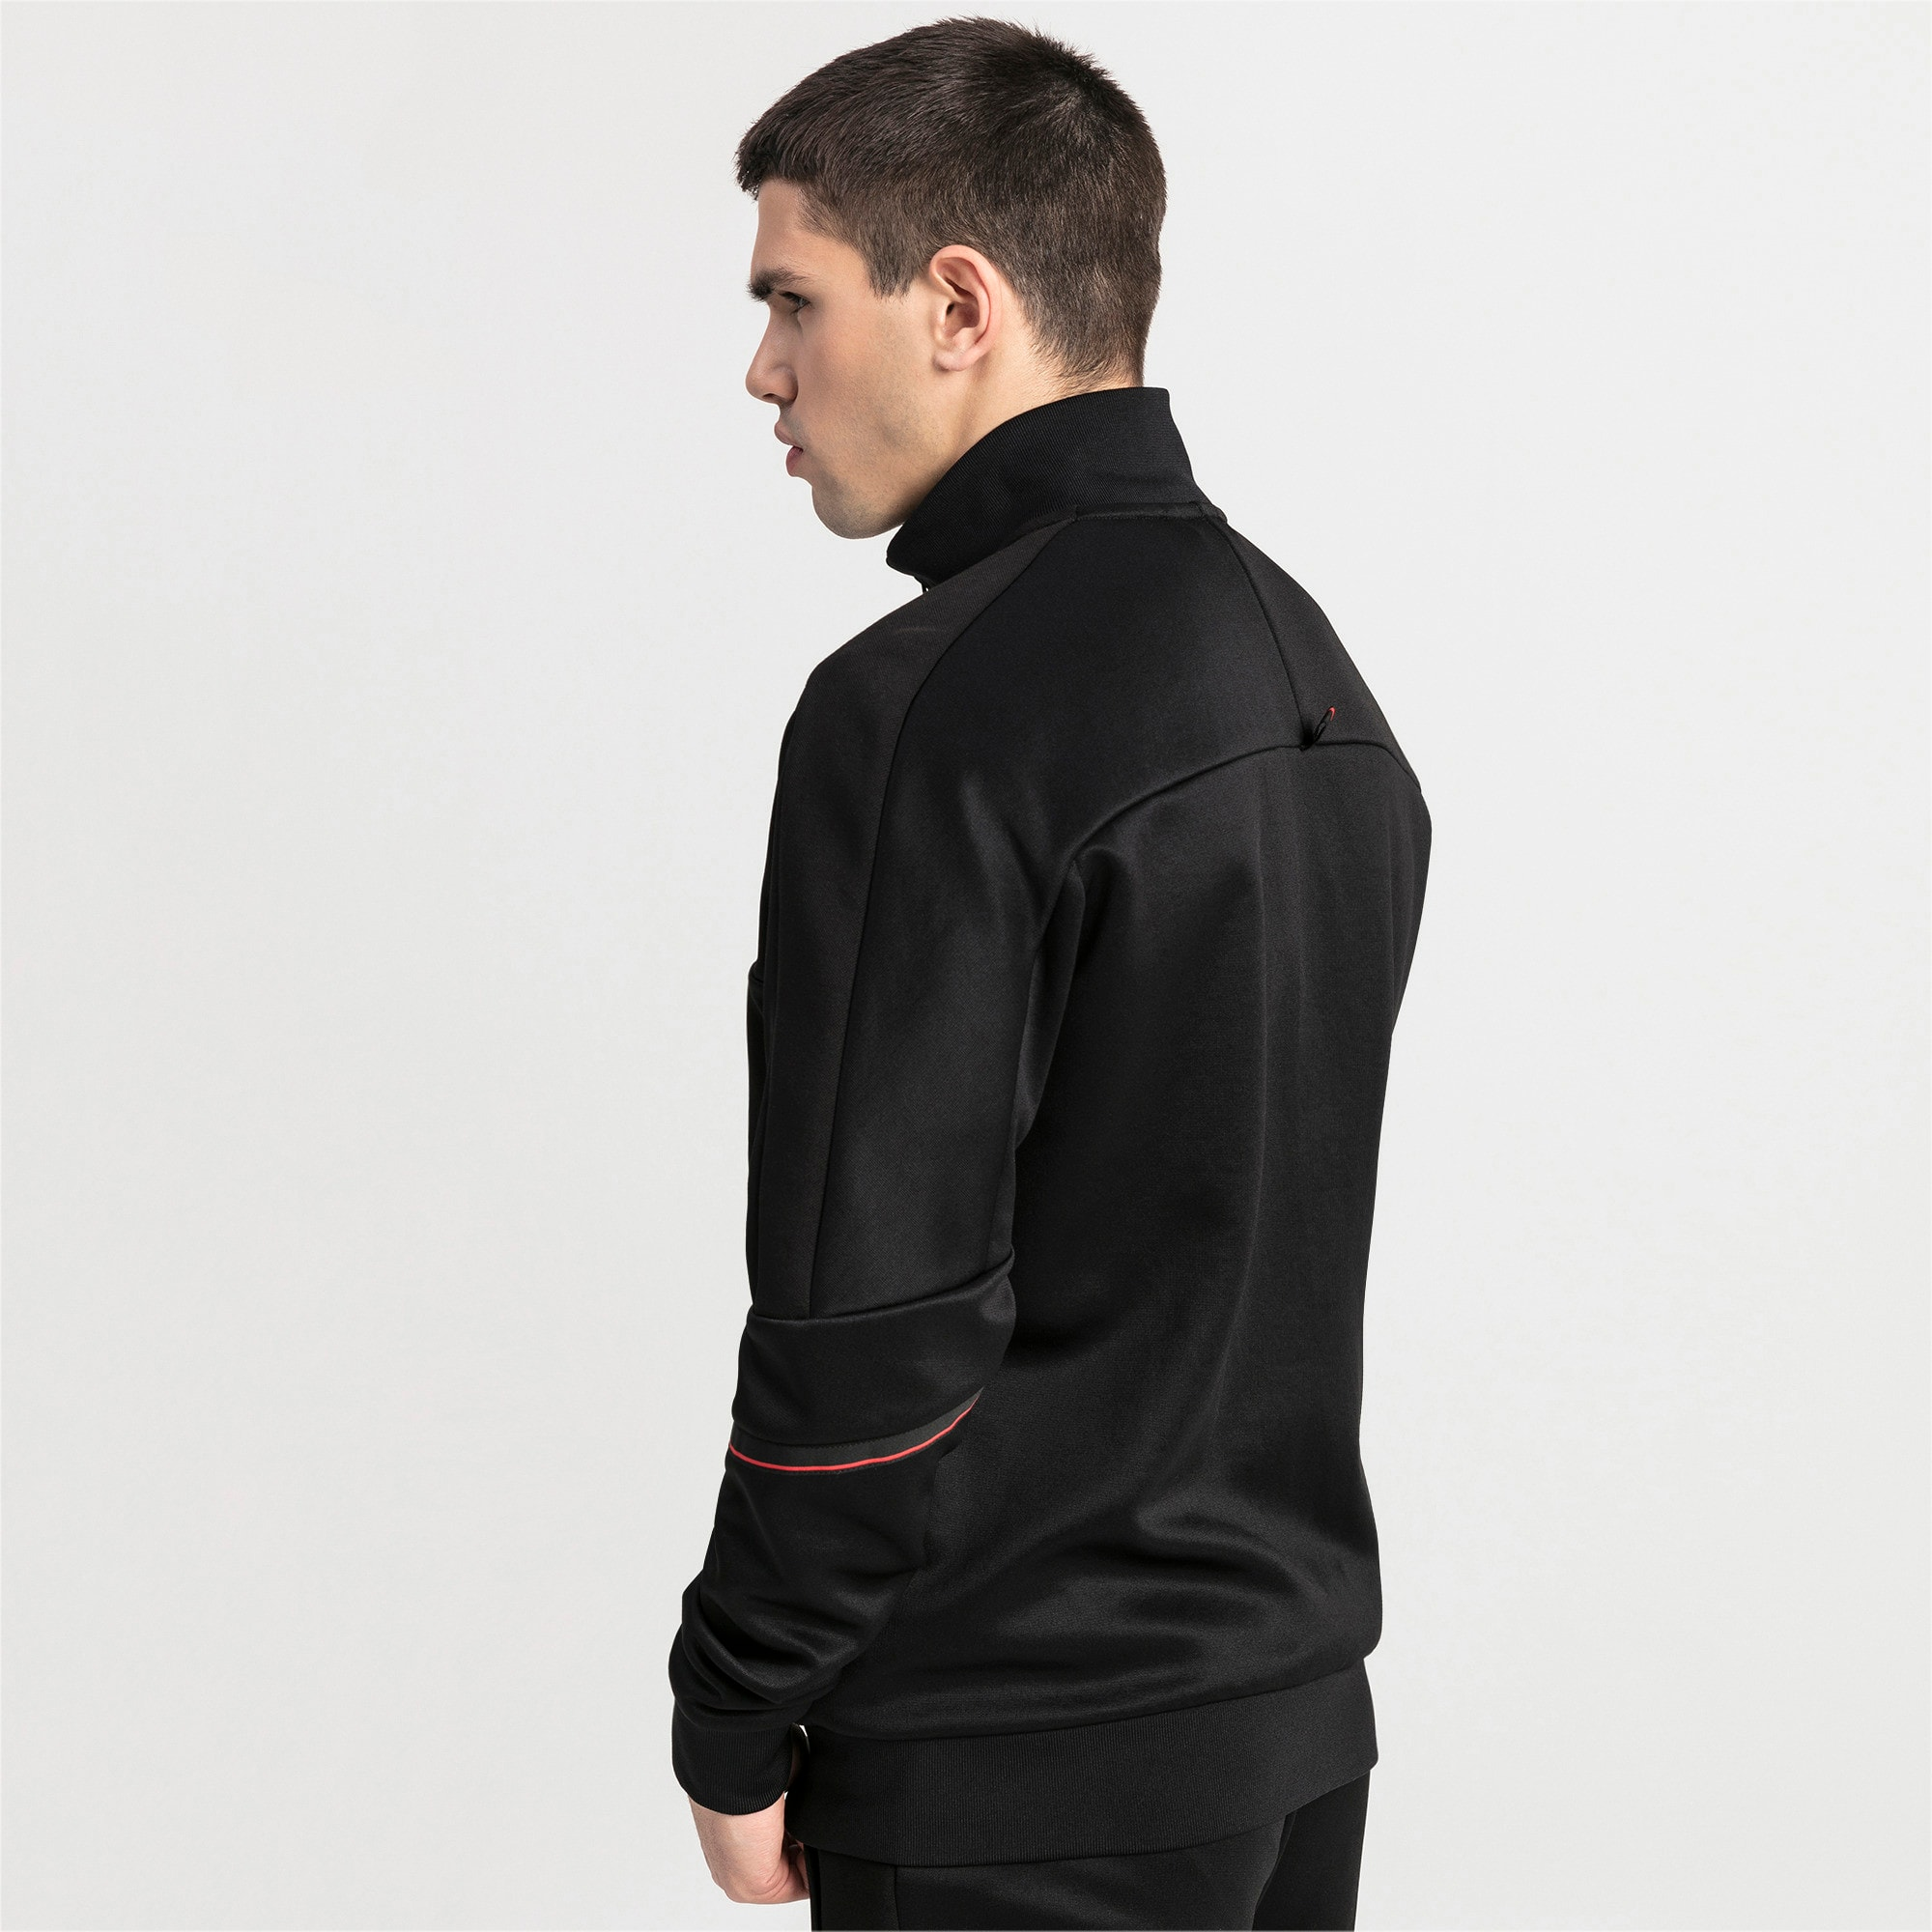 Thumbnail 2 of Ferrari T7 Herren Trainingsjacke, Puma Black, medium